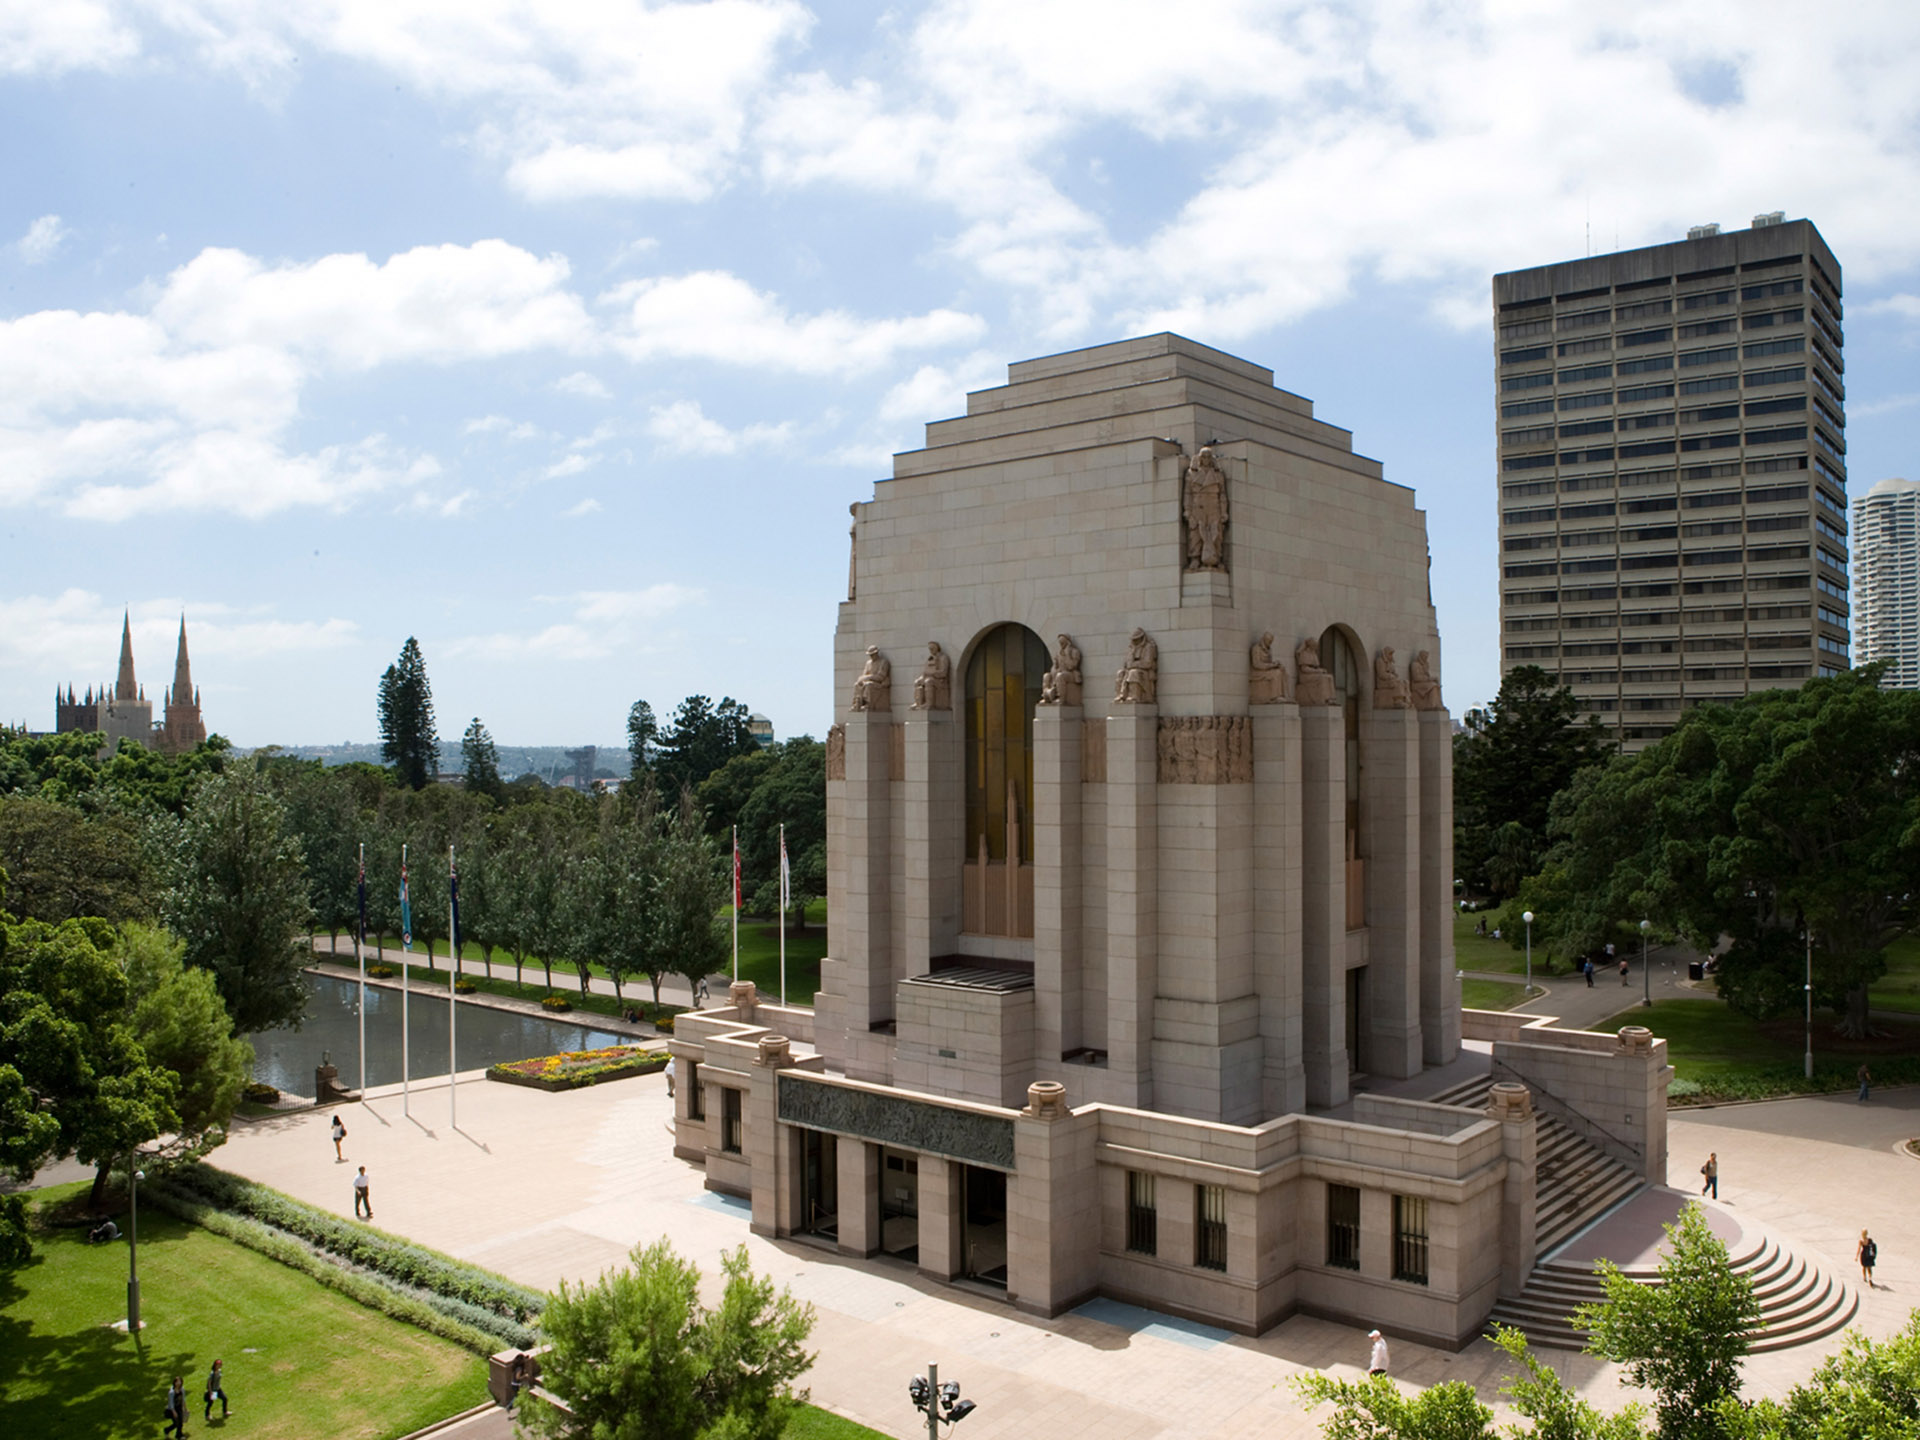 Anzac Memorial, Hyde Park. Photograph by Rob Tuckwell. Provided courtesy of the Trustees of the Anzac Memorial.